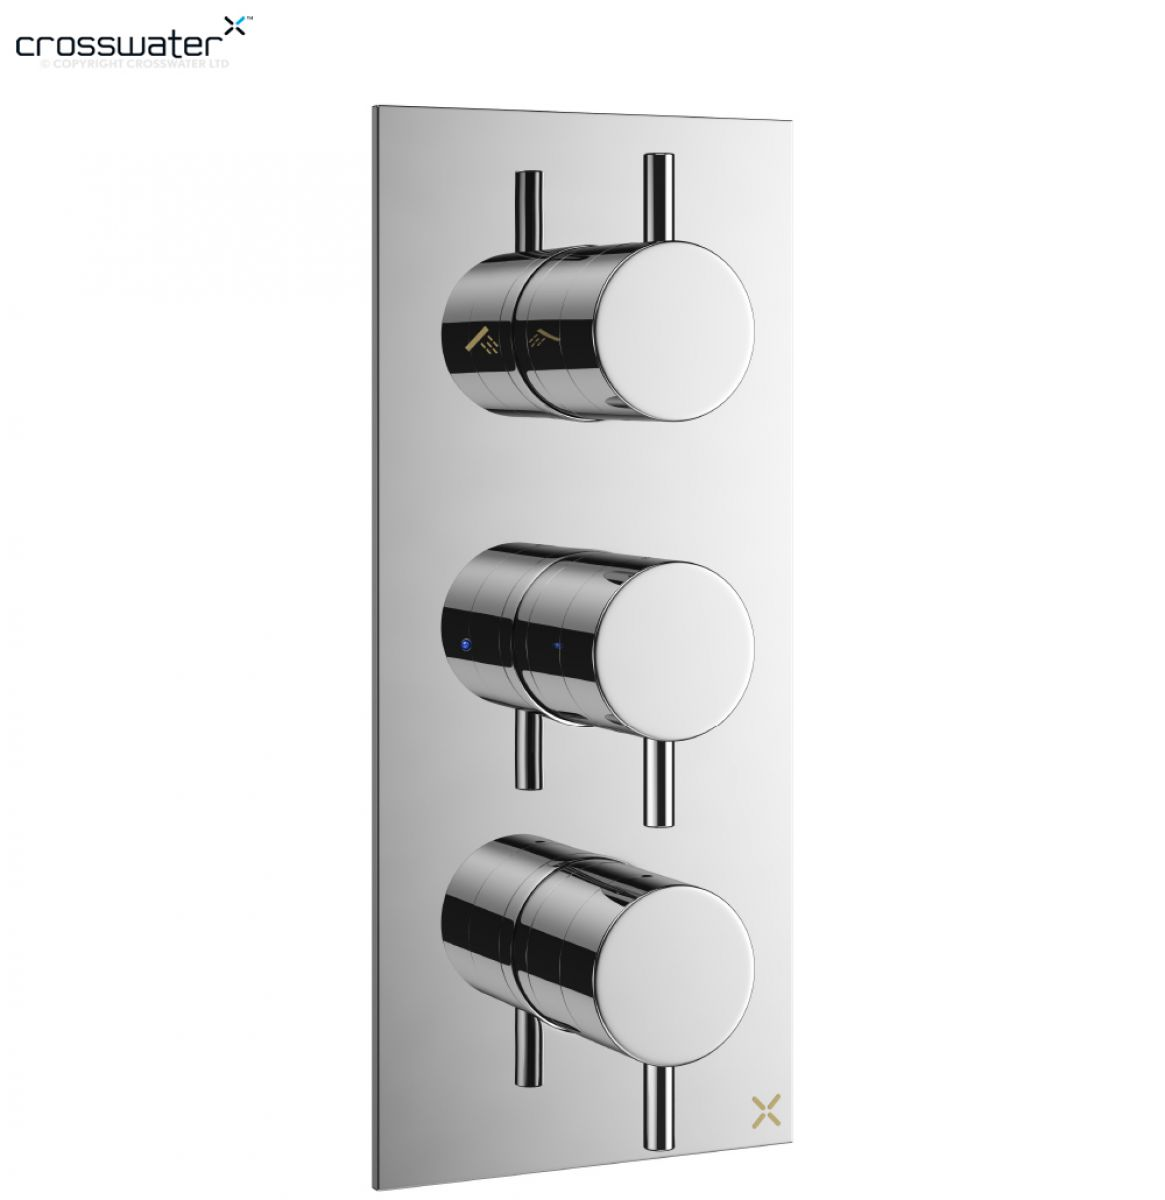 Crosswater MPRO Thermostatic Shower Valve 3 Controls